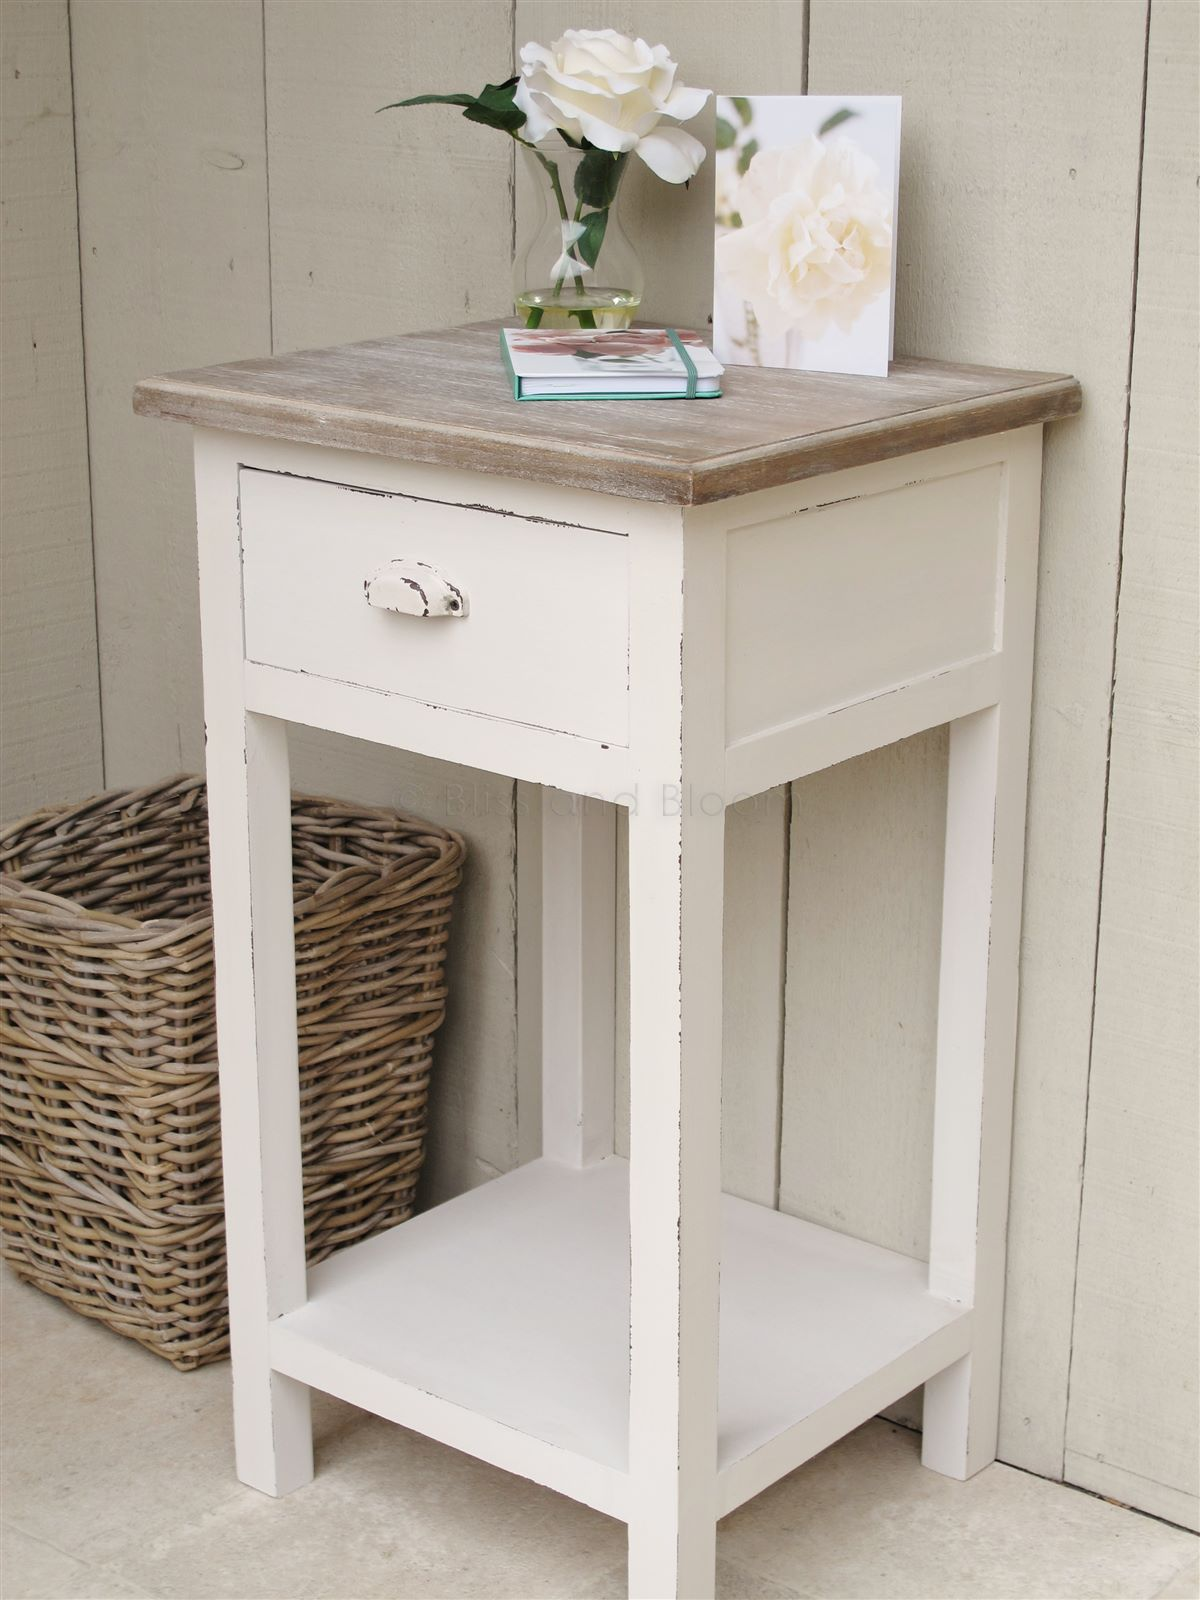 Rustic Painted Nightstands